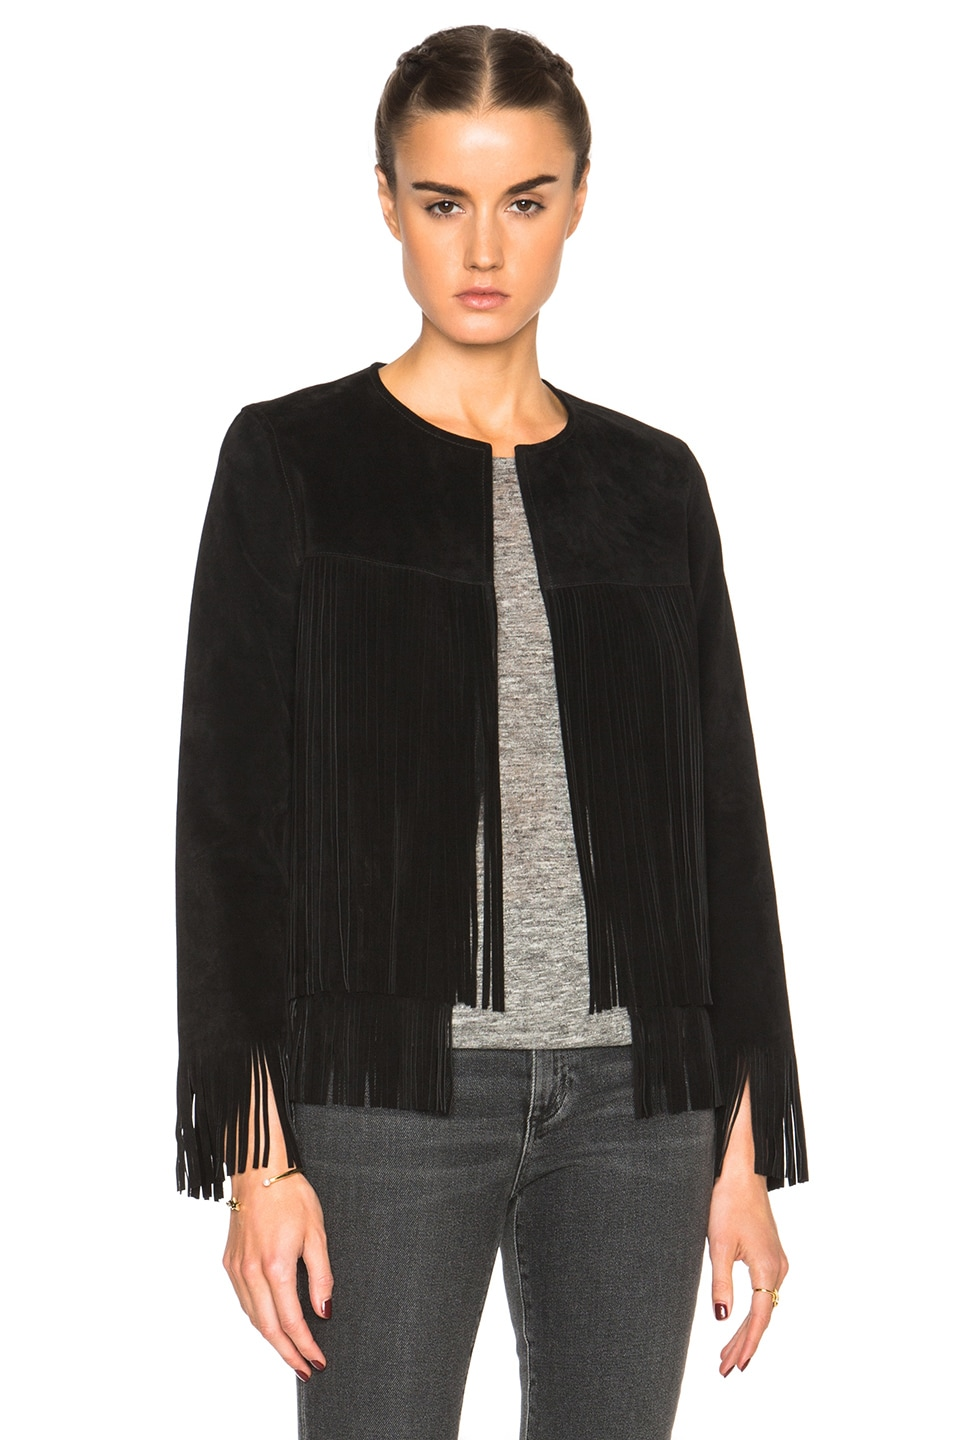 Image 1 of ThePerfext Ryder Classic Thin Fringe Jacket in Black Suede